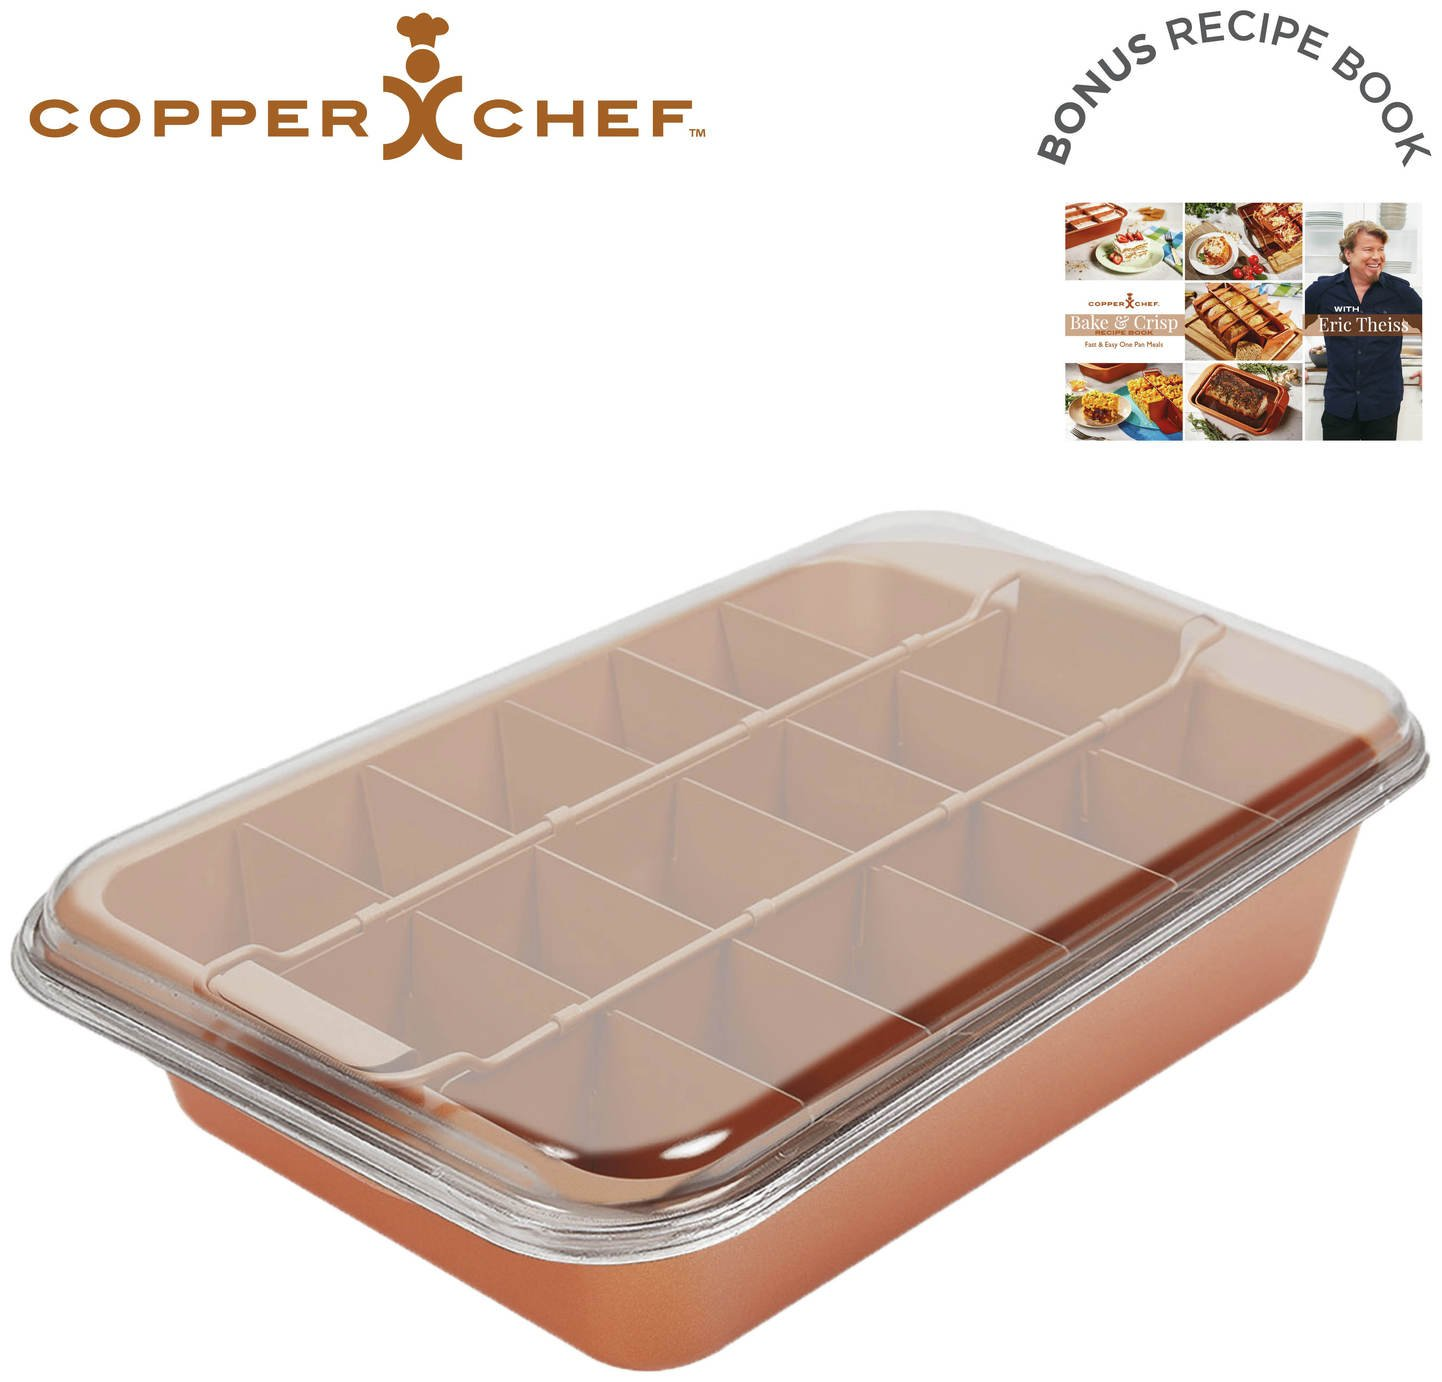 Image of Copper Chef Bake & Crisp Roasting Tin with Accessories